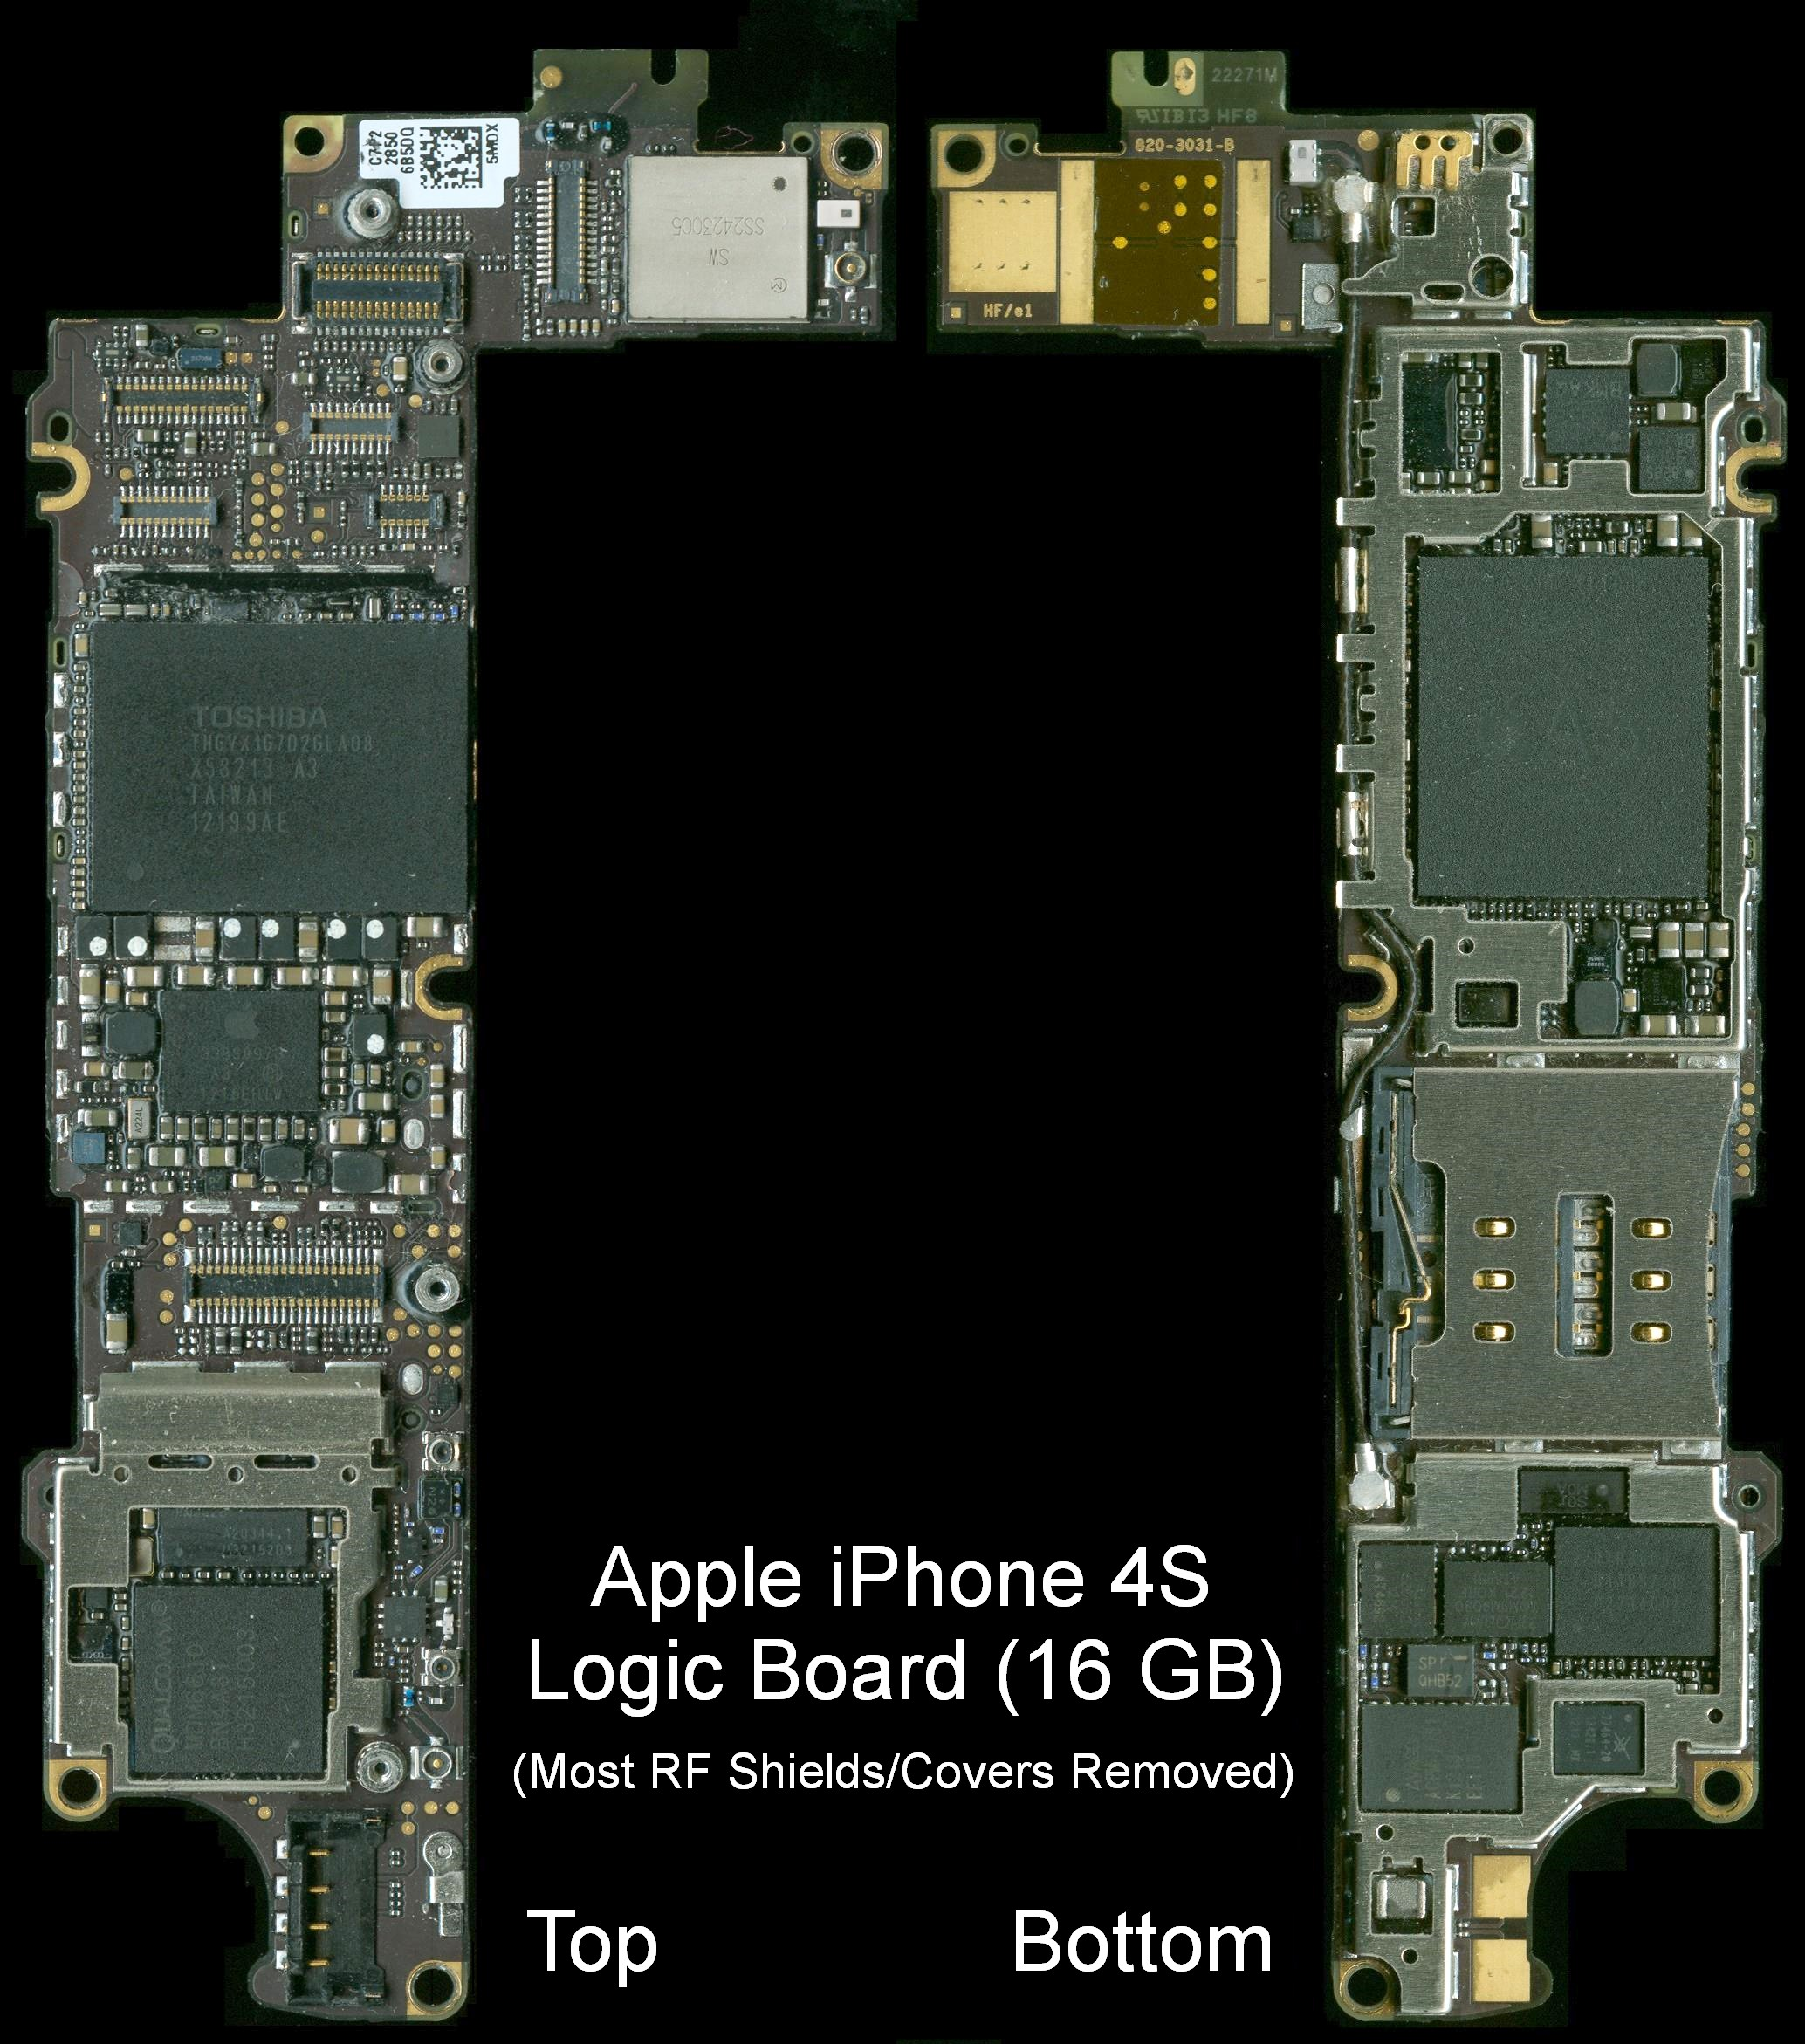 hps wiring diagram with capacitor rheem gas furnace parts notes on the troubleshooting and repair of audio equipment other iphone 4s logic board